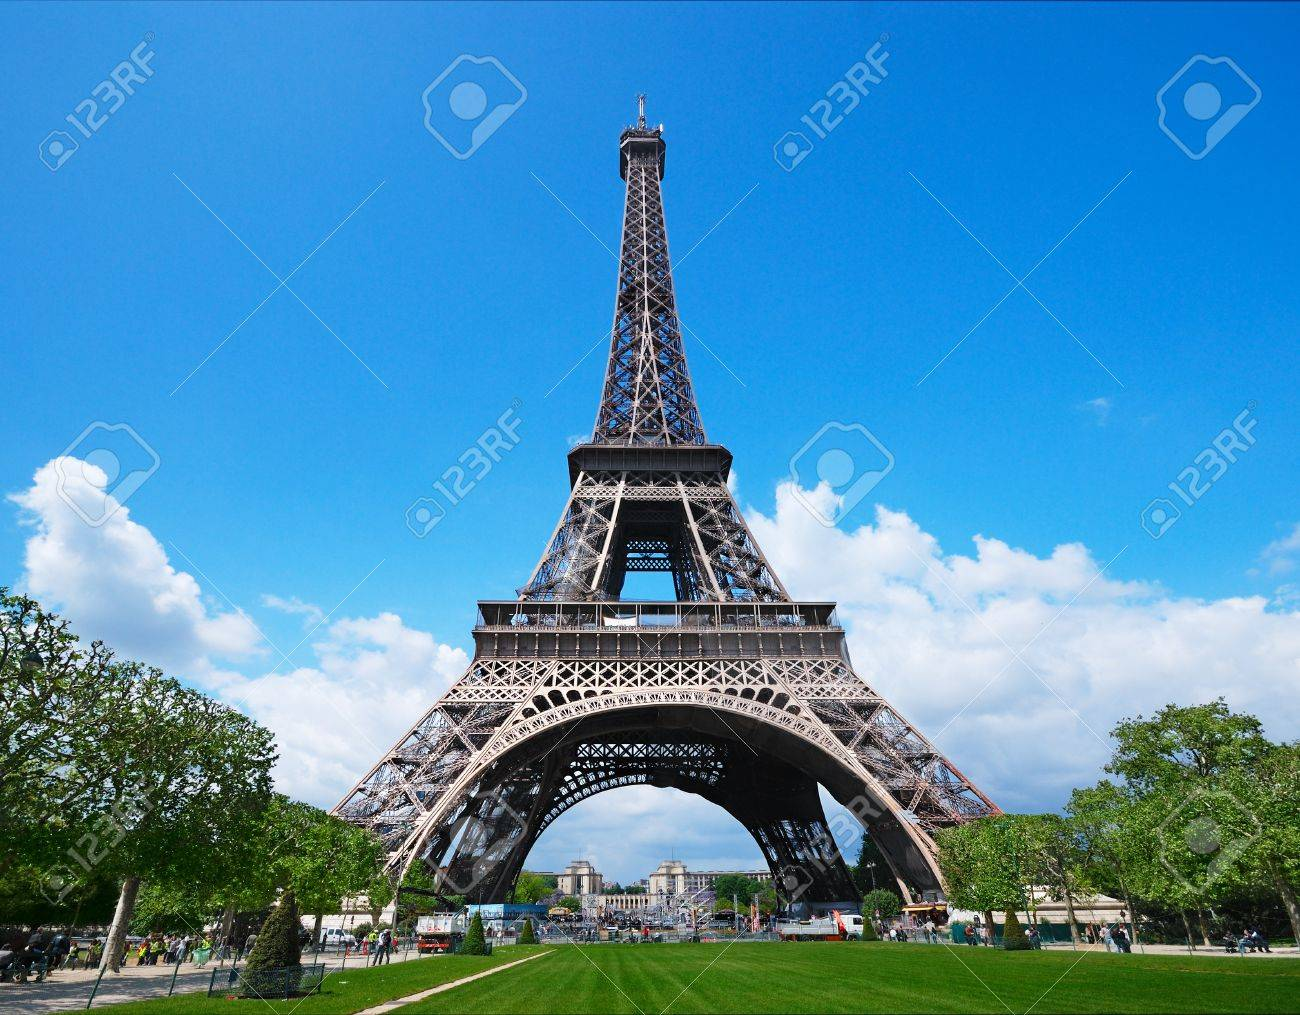 The Eiffel Tower against a blue sky Stock Photo - 9318916